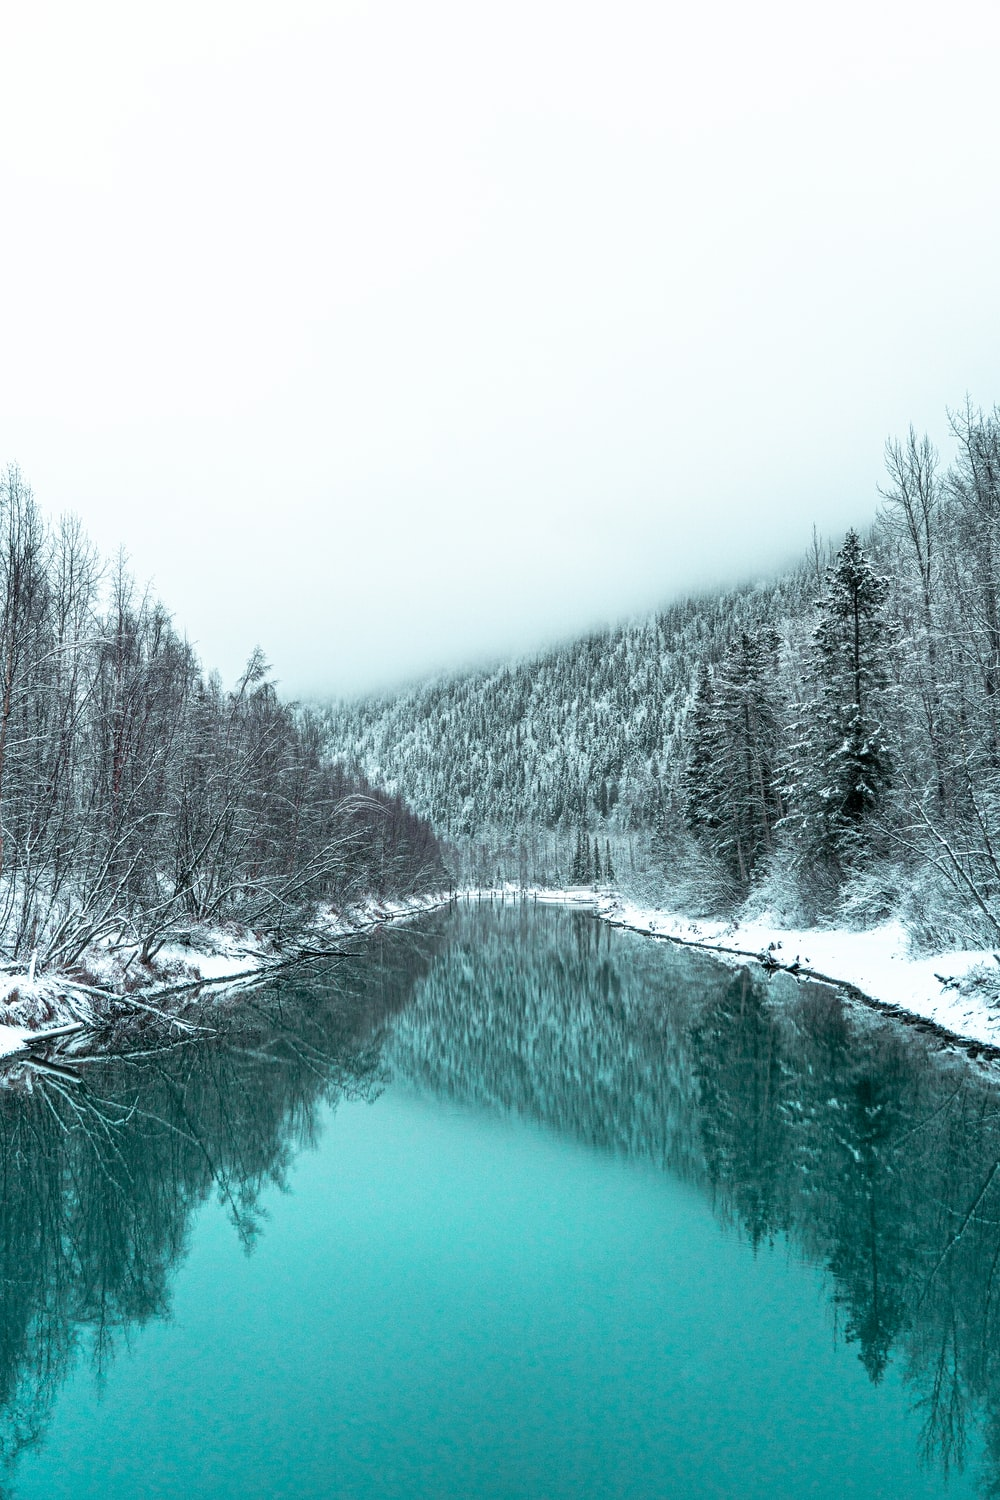 river in between snow-covered trees